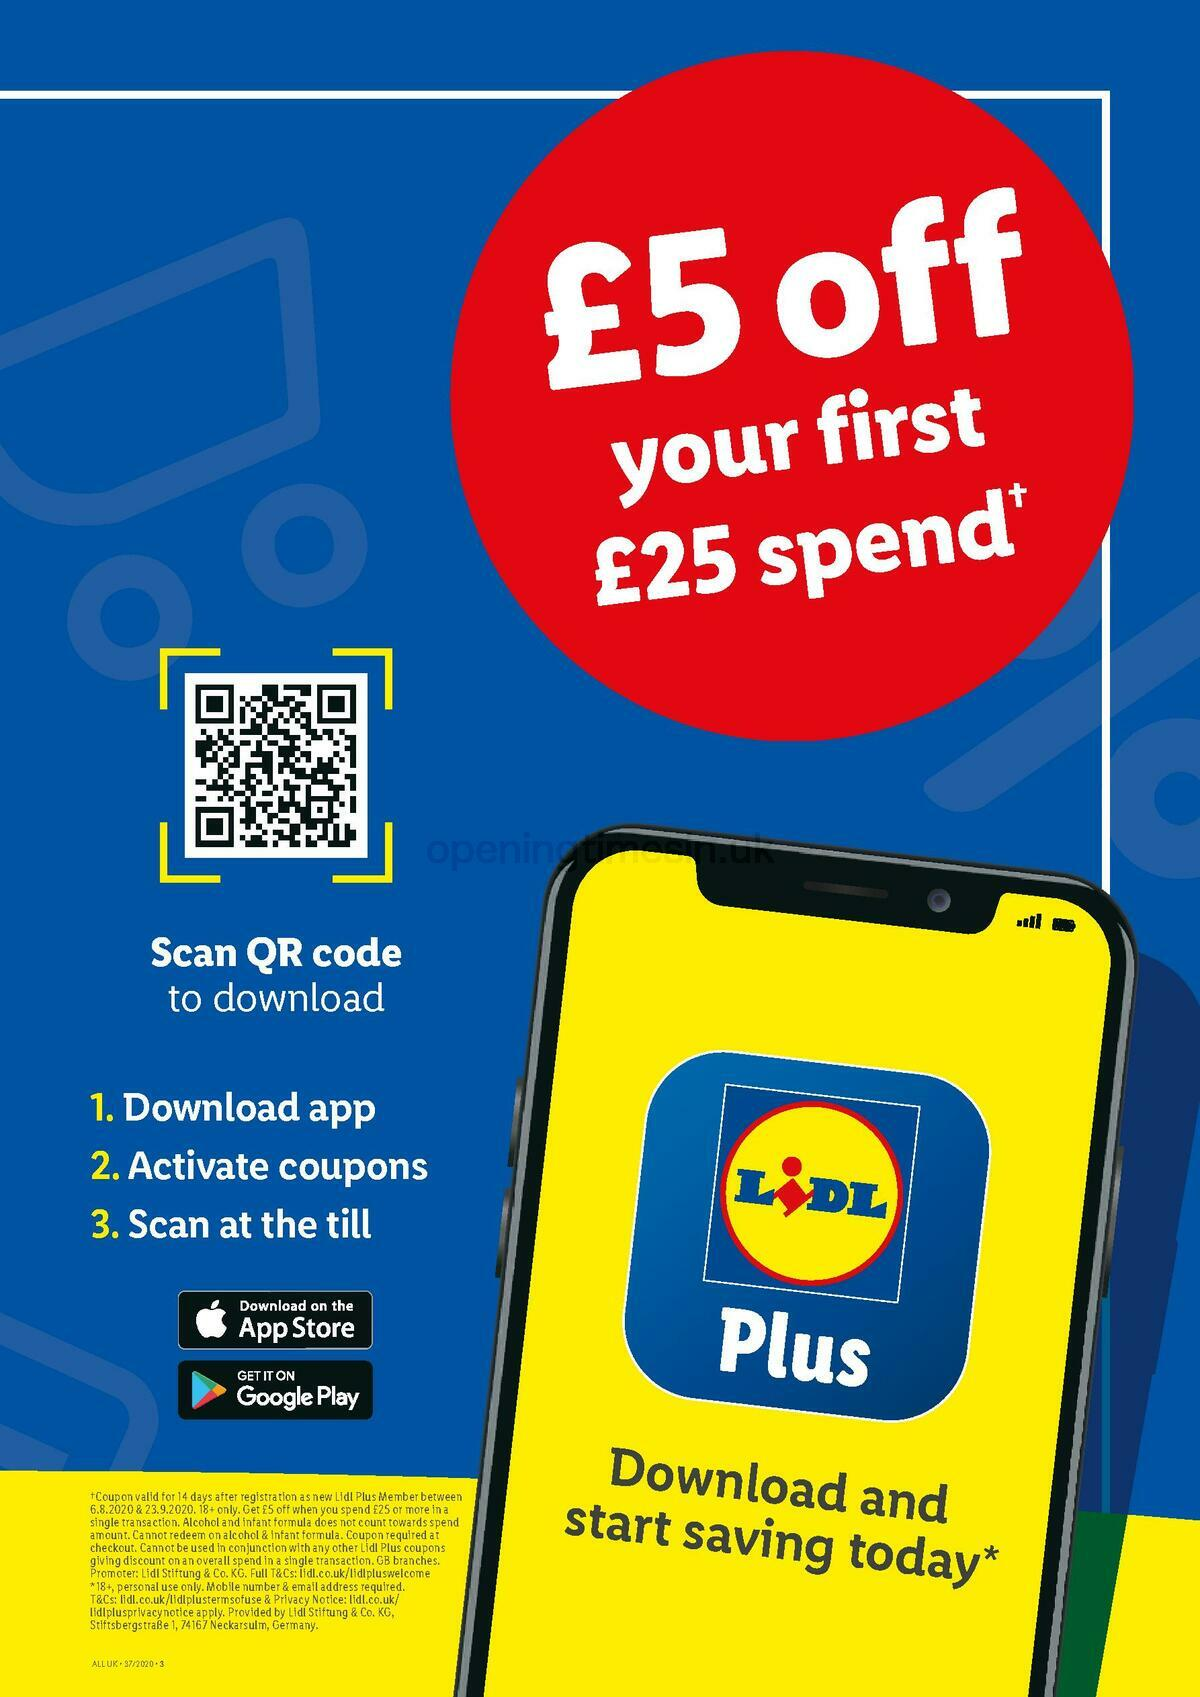 LIDL Offers from September 10